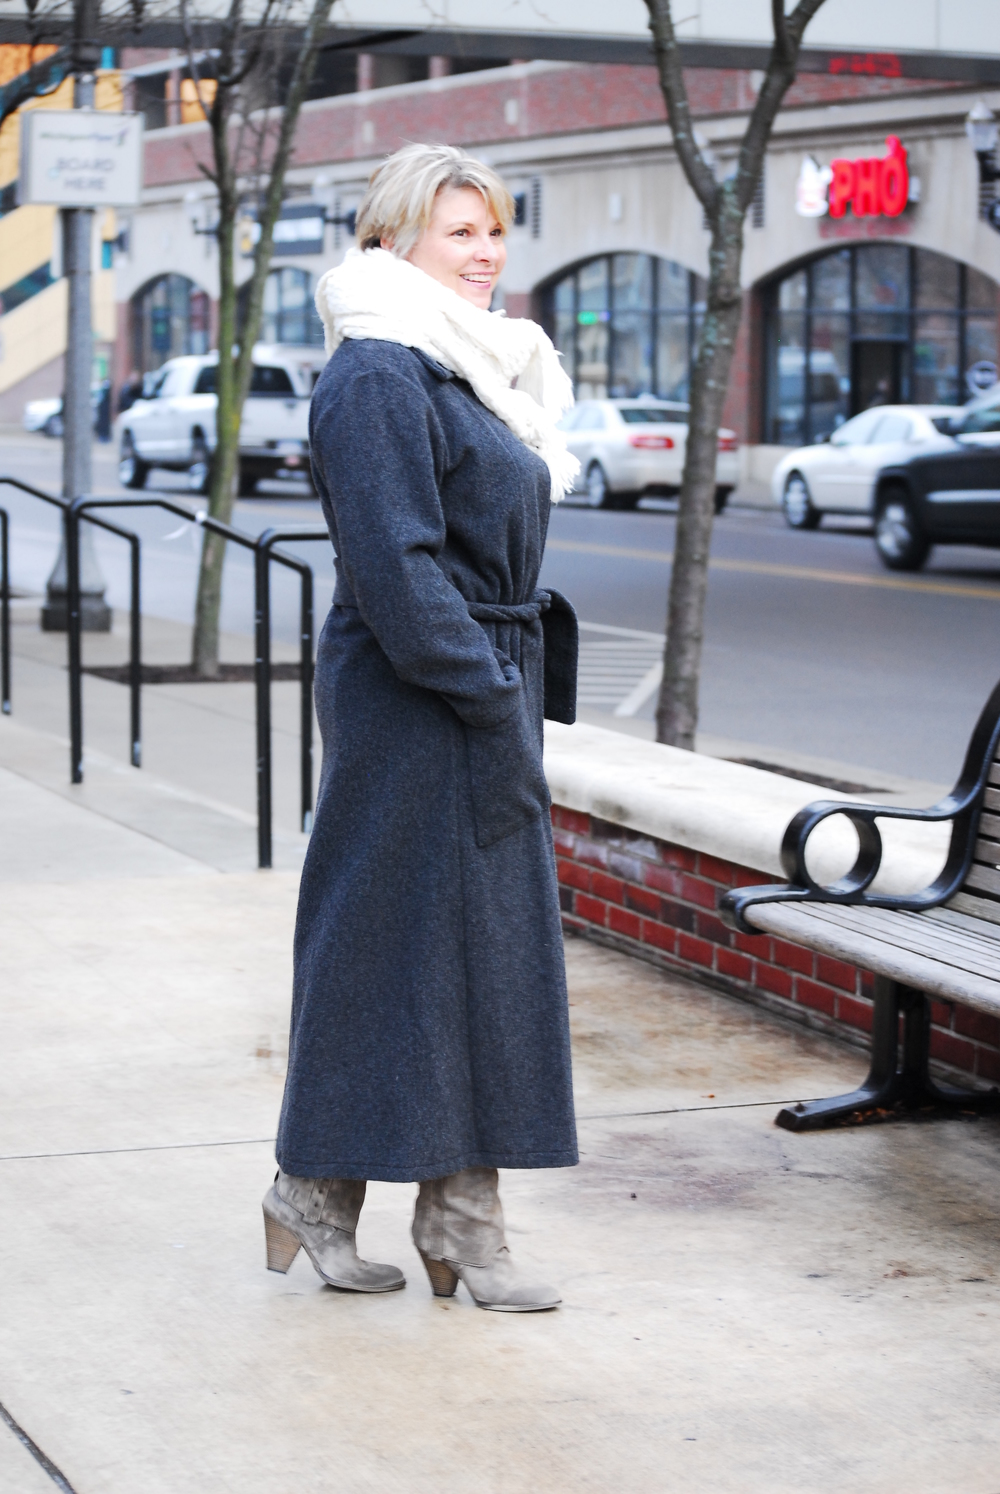 Sherry, in our Easy Coat, Maxi Length Wool/Cashmere Unlined version. Sherry's own boots and Scarf provided by Ann, our Stylist